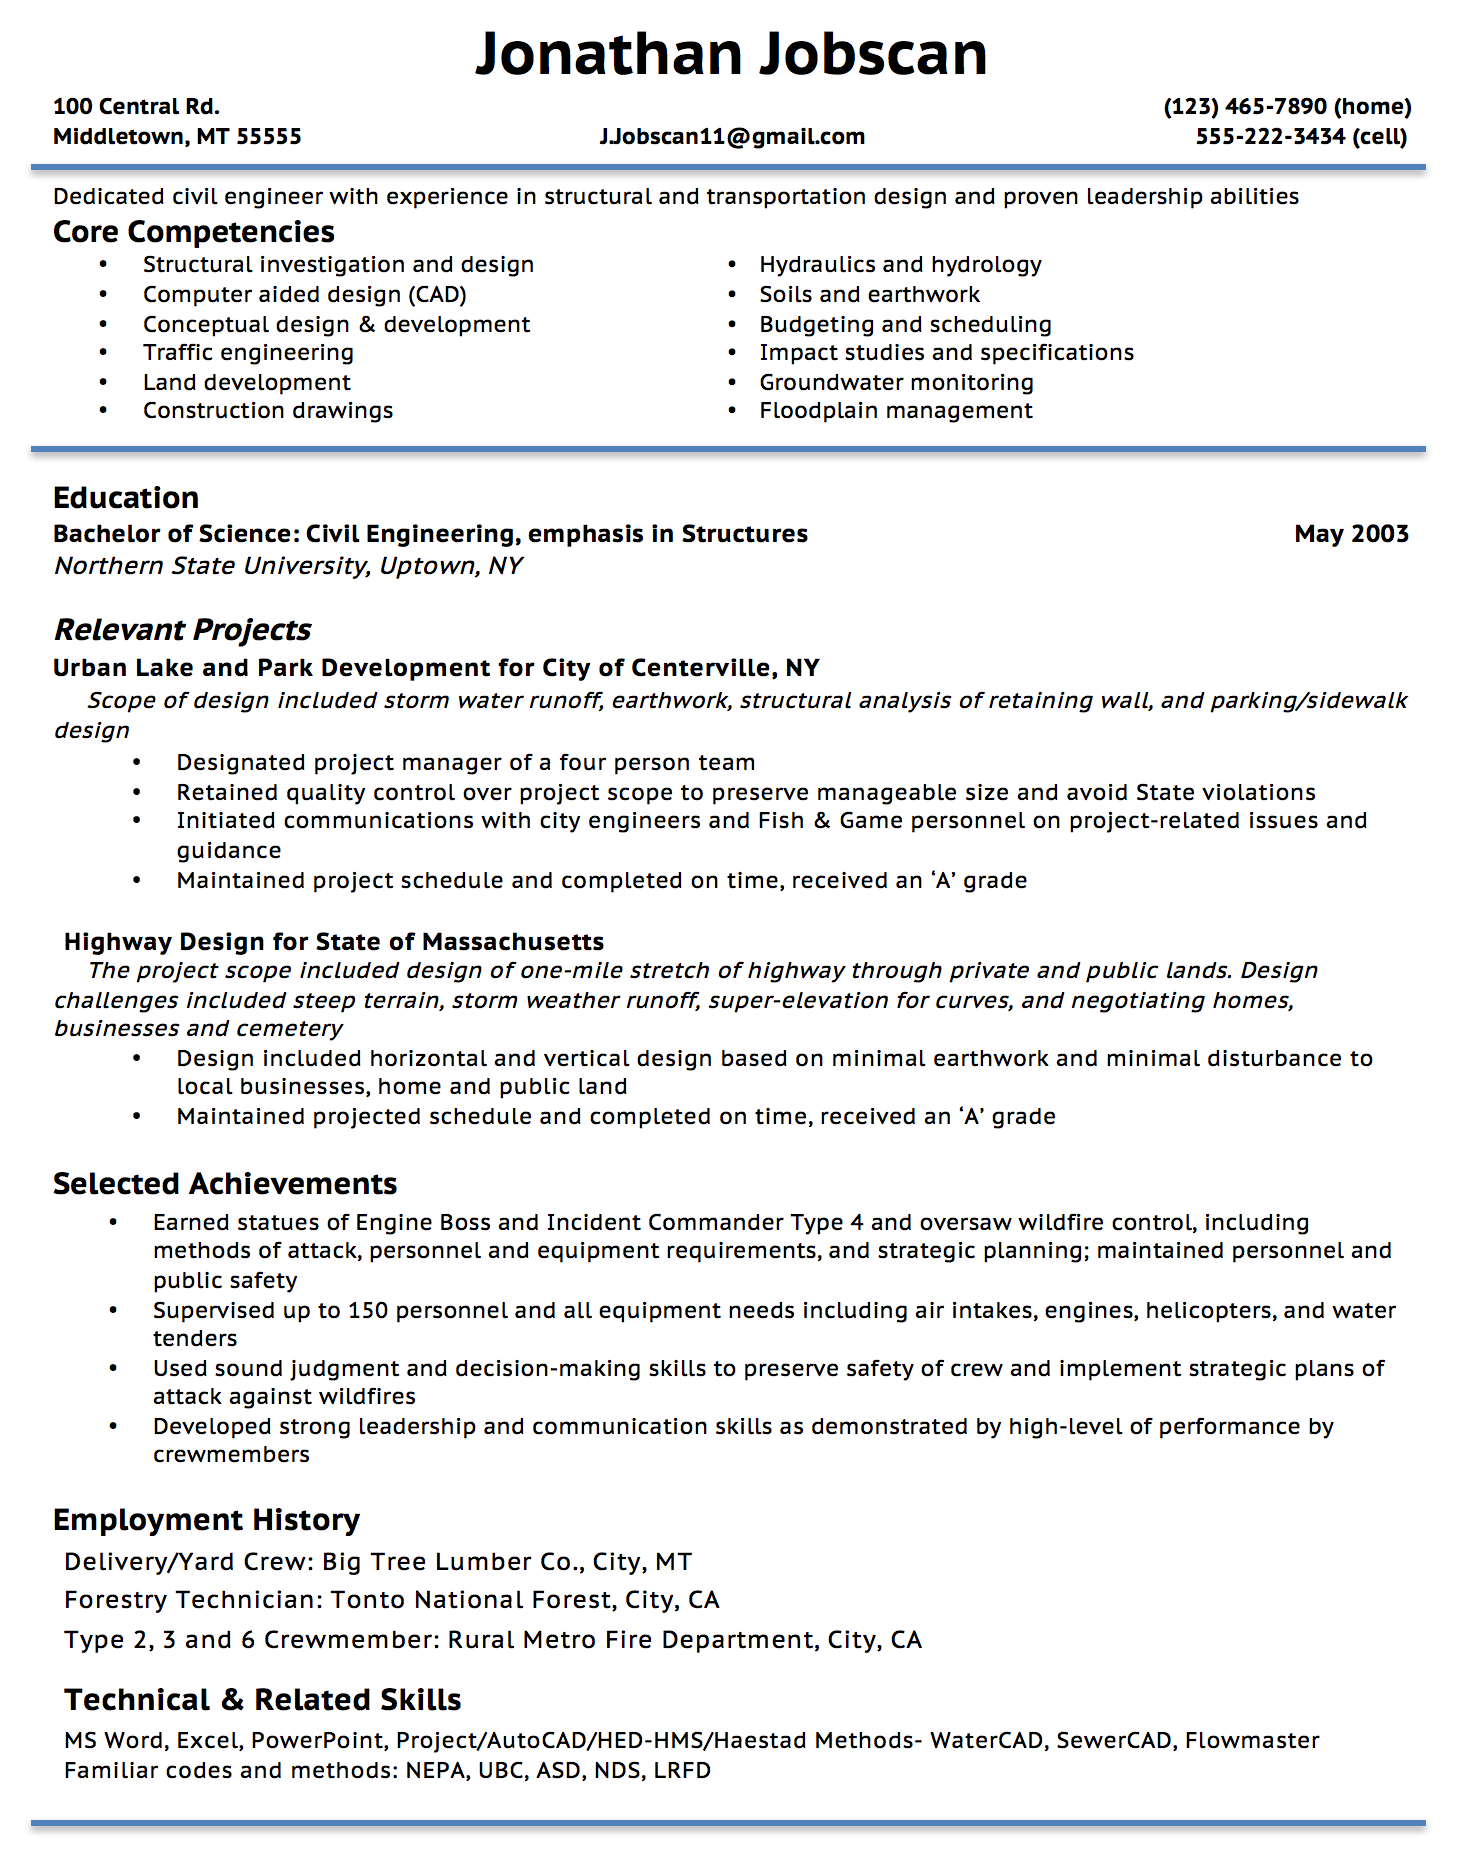 Picnictoimpeachus  Terrific Resume Writing Guide  Jobscan With Entrancing Example Of A Functional Resume Format With Charming Educator Resume Also Coo Resume In Addition Resume Hobbies And Executive Resume Writing As Well As Office Assistant Resume Sample Additionally Customer Service Call Center Resume From Jobscanco With Picnictoimpeachus  Entrancing Resume Writing Guide  Jobscan With Charming Example Of A Functional Resume Format And Terrific Educator Resume Also Coo Resume In Addition Resume Hobbies From Jobscanco